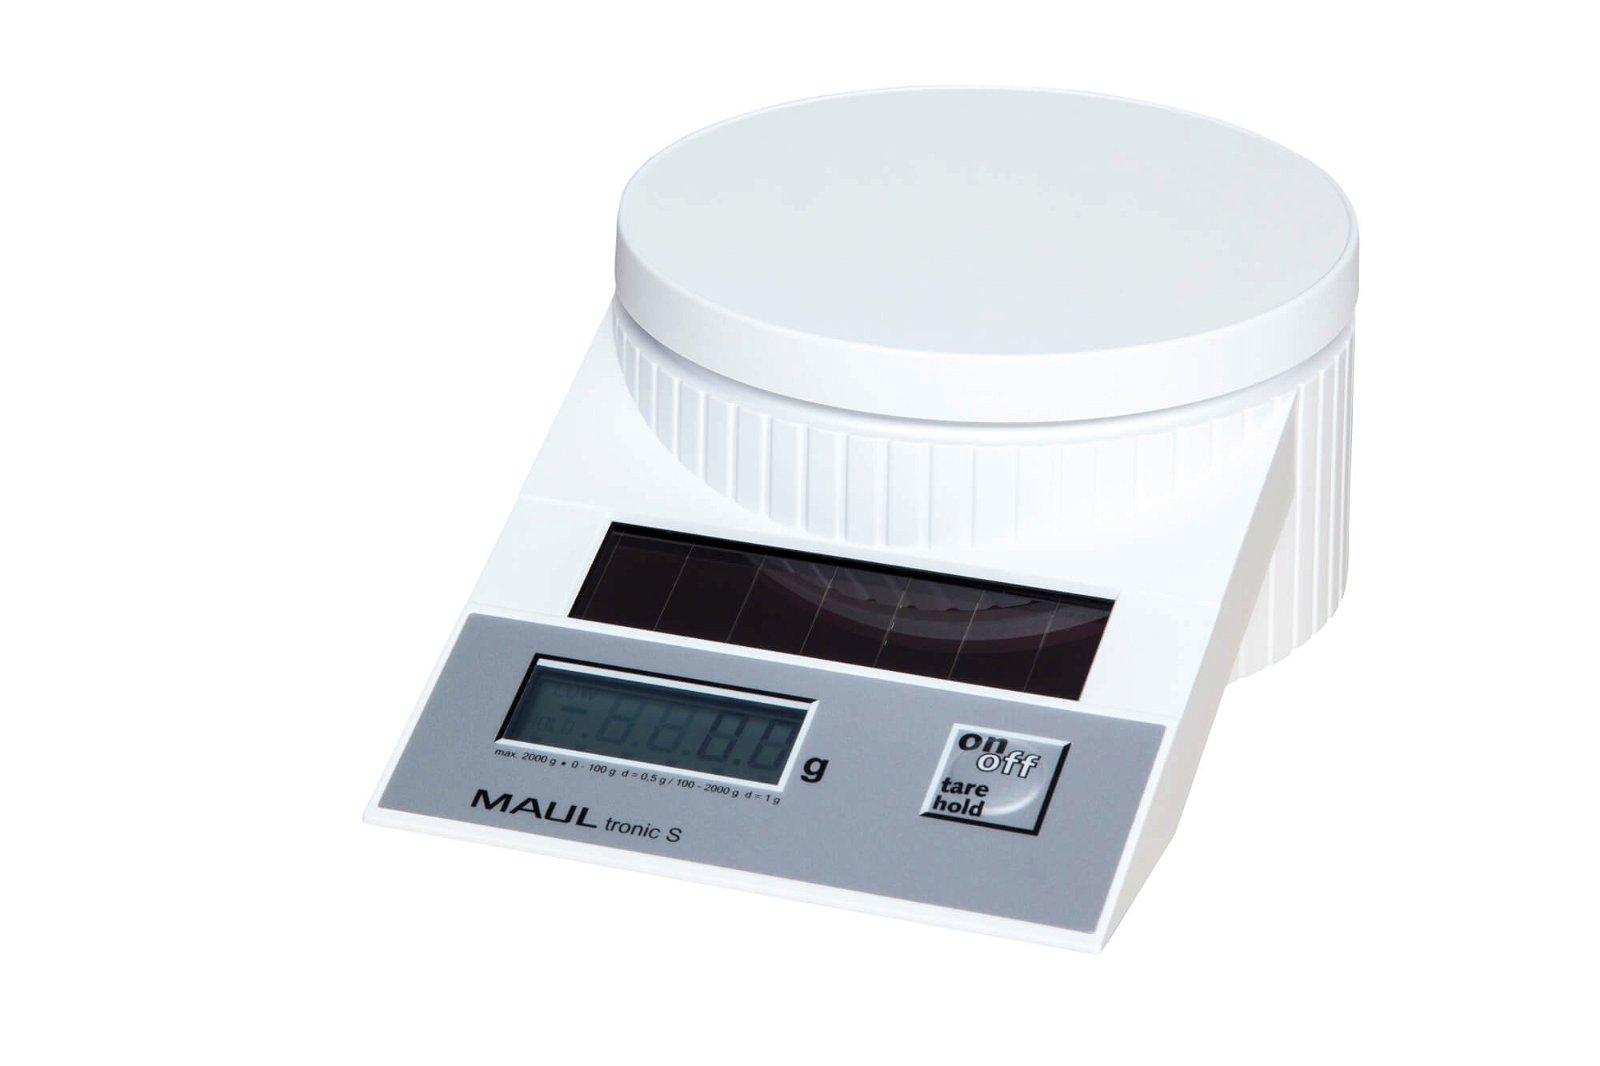 Solar-Briefwaage MAULtronic S, 2000 g, weiß